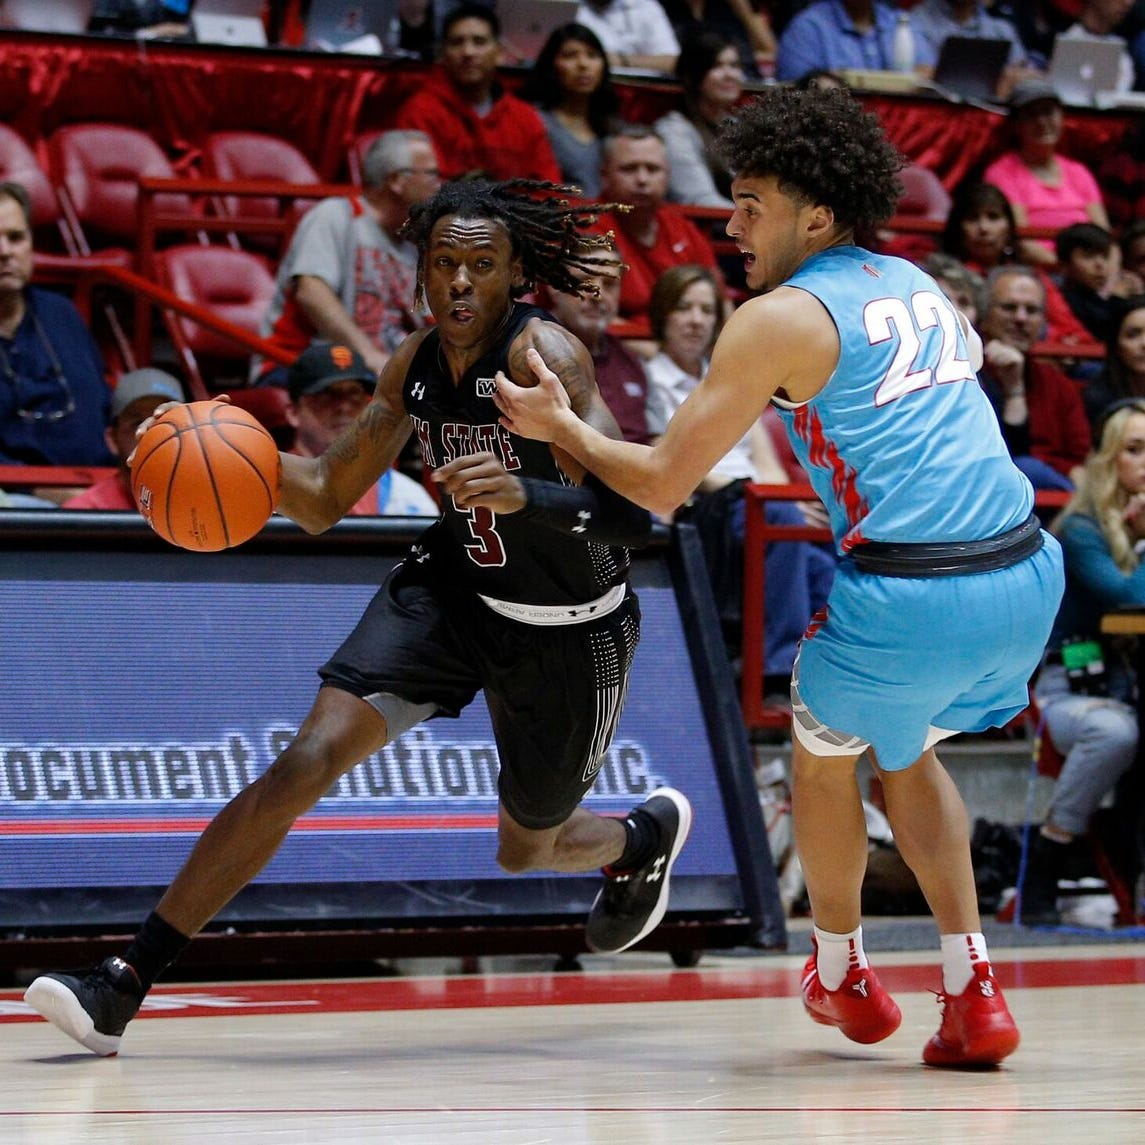 4 takeaways from New Mexico State's win over New Mexico